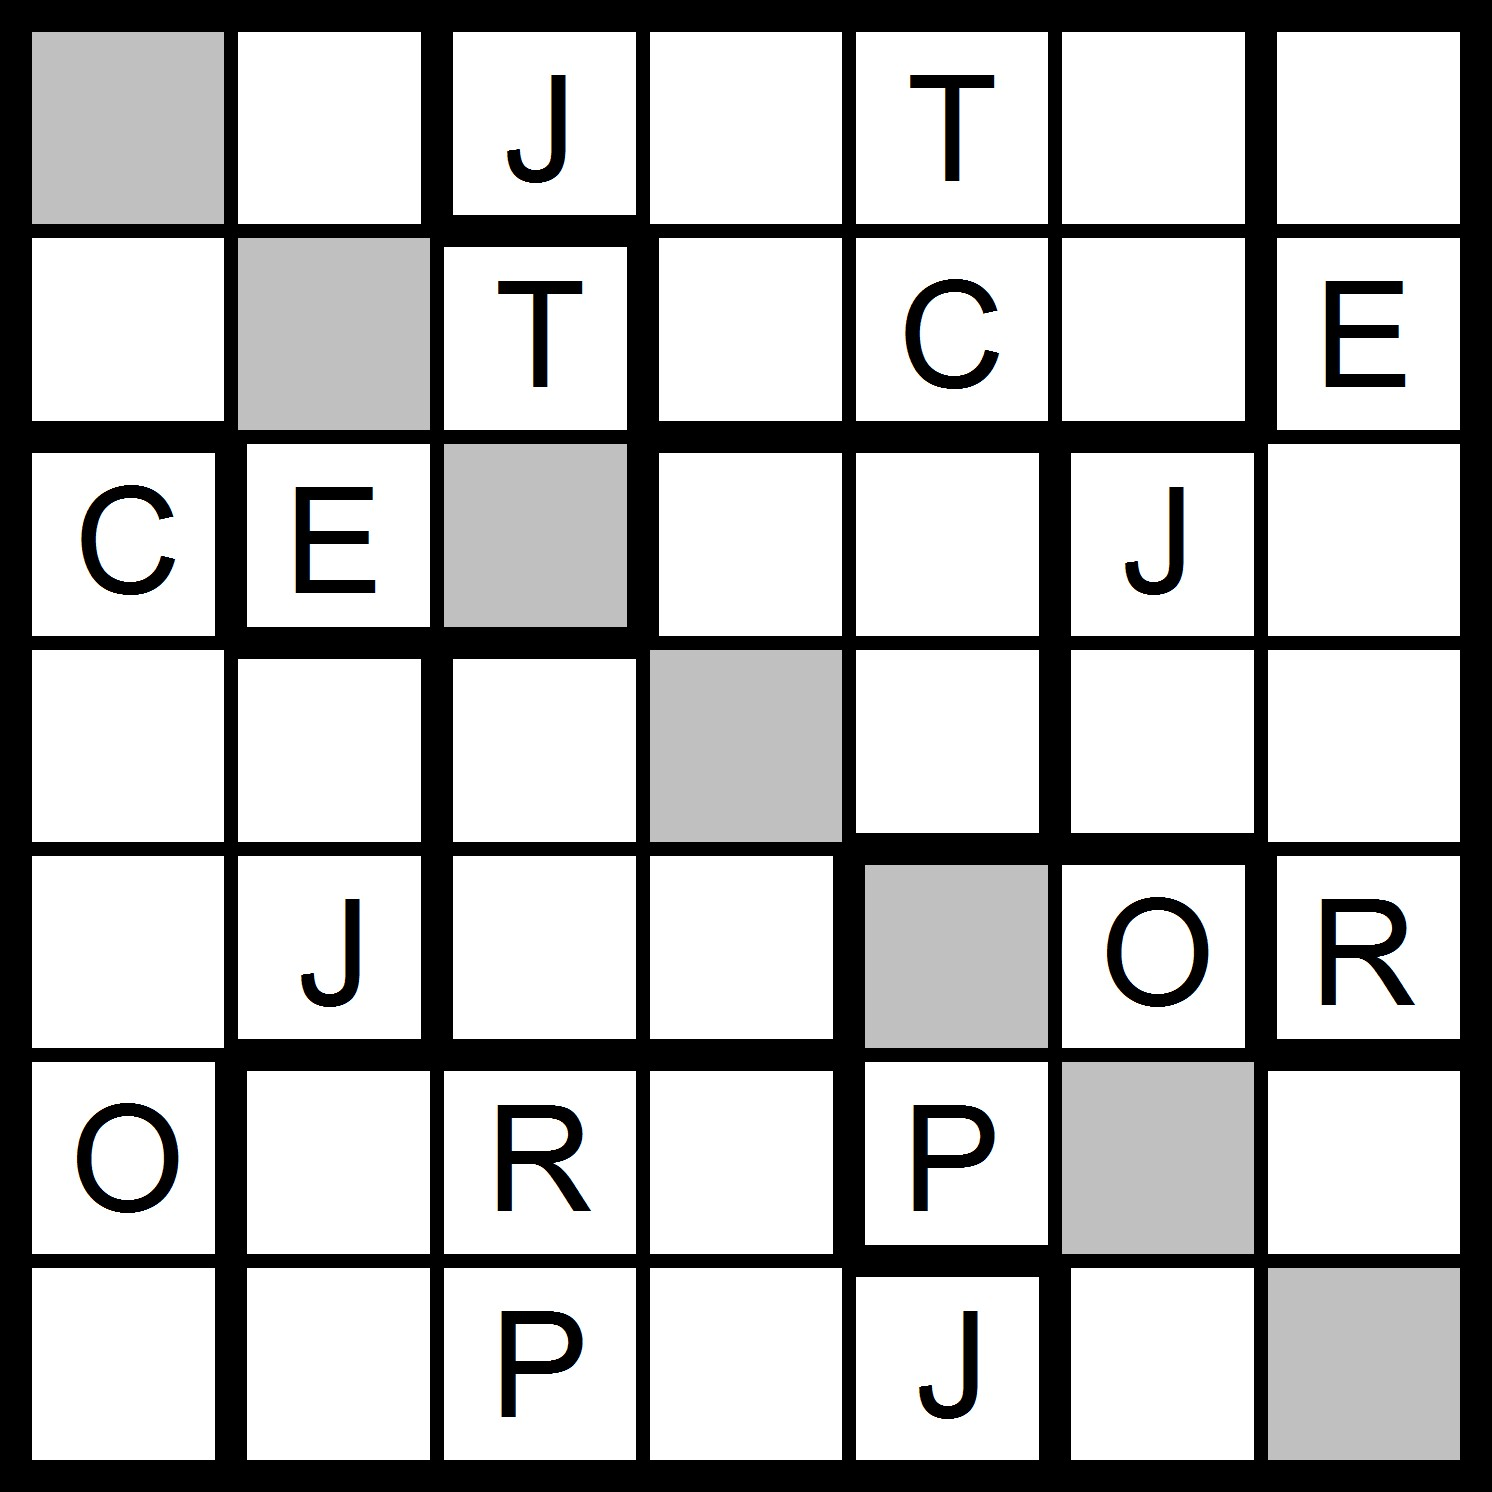 Magic Word Square: New Word Sudoku Puzzles for Friday, 10/13/2017